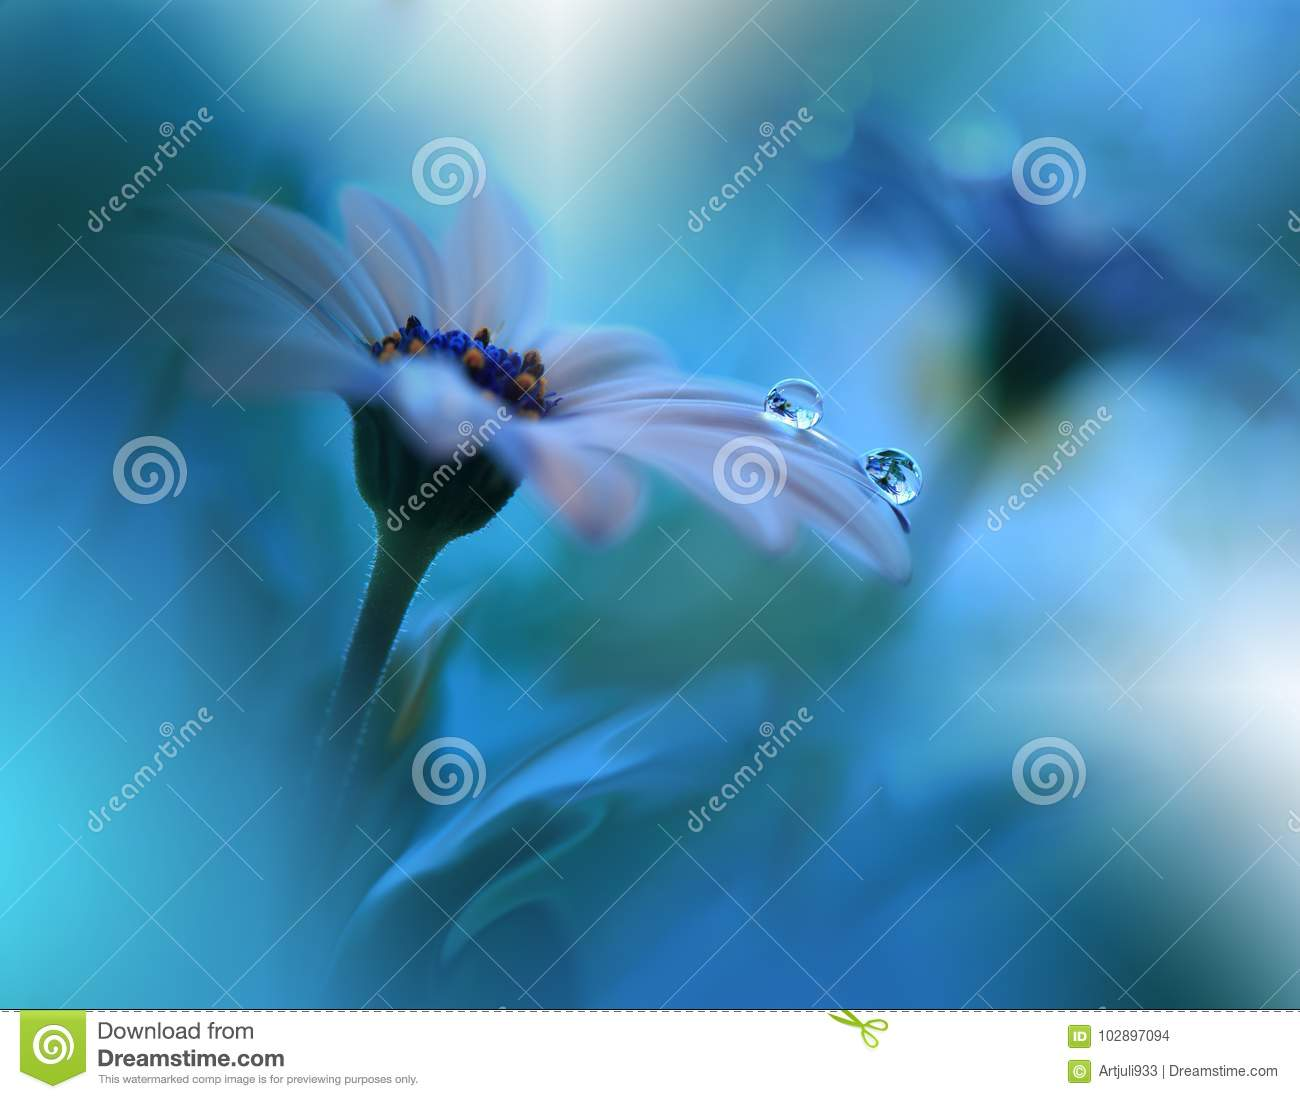 Beautiful Blue Nature Background.Spring Flowers.Ocean Concept,water.Tranquil Abstract Closeup Art Photography.Floral Design.Plant.